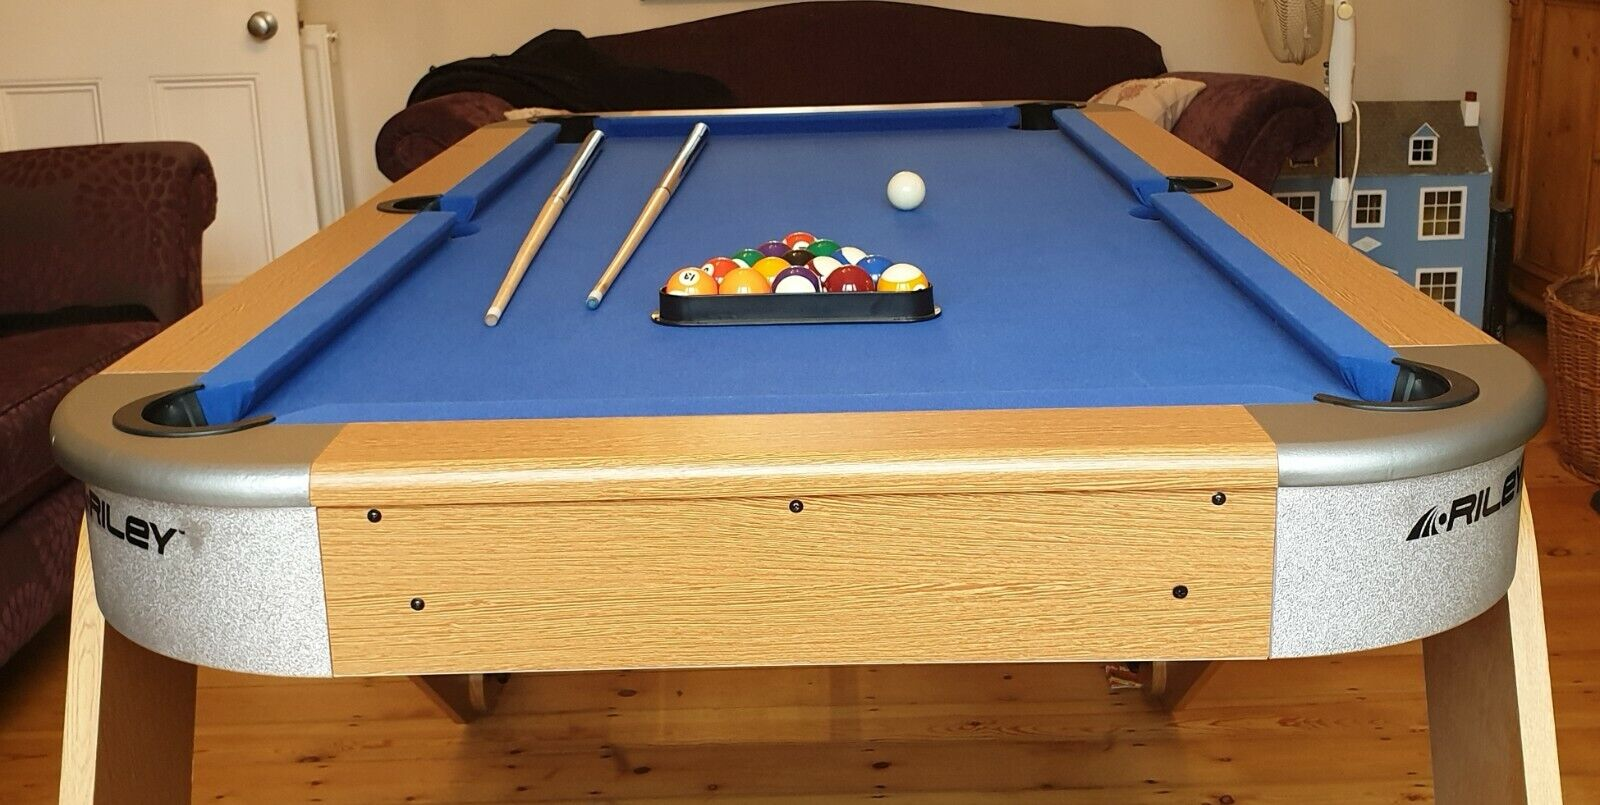 Pool Table - Riley 6ft 6In Vertical Folding Pool Table - light use only